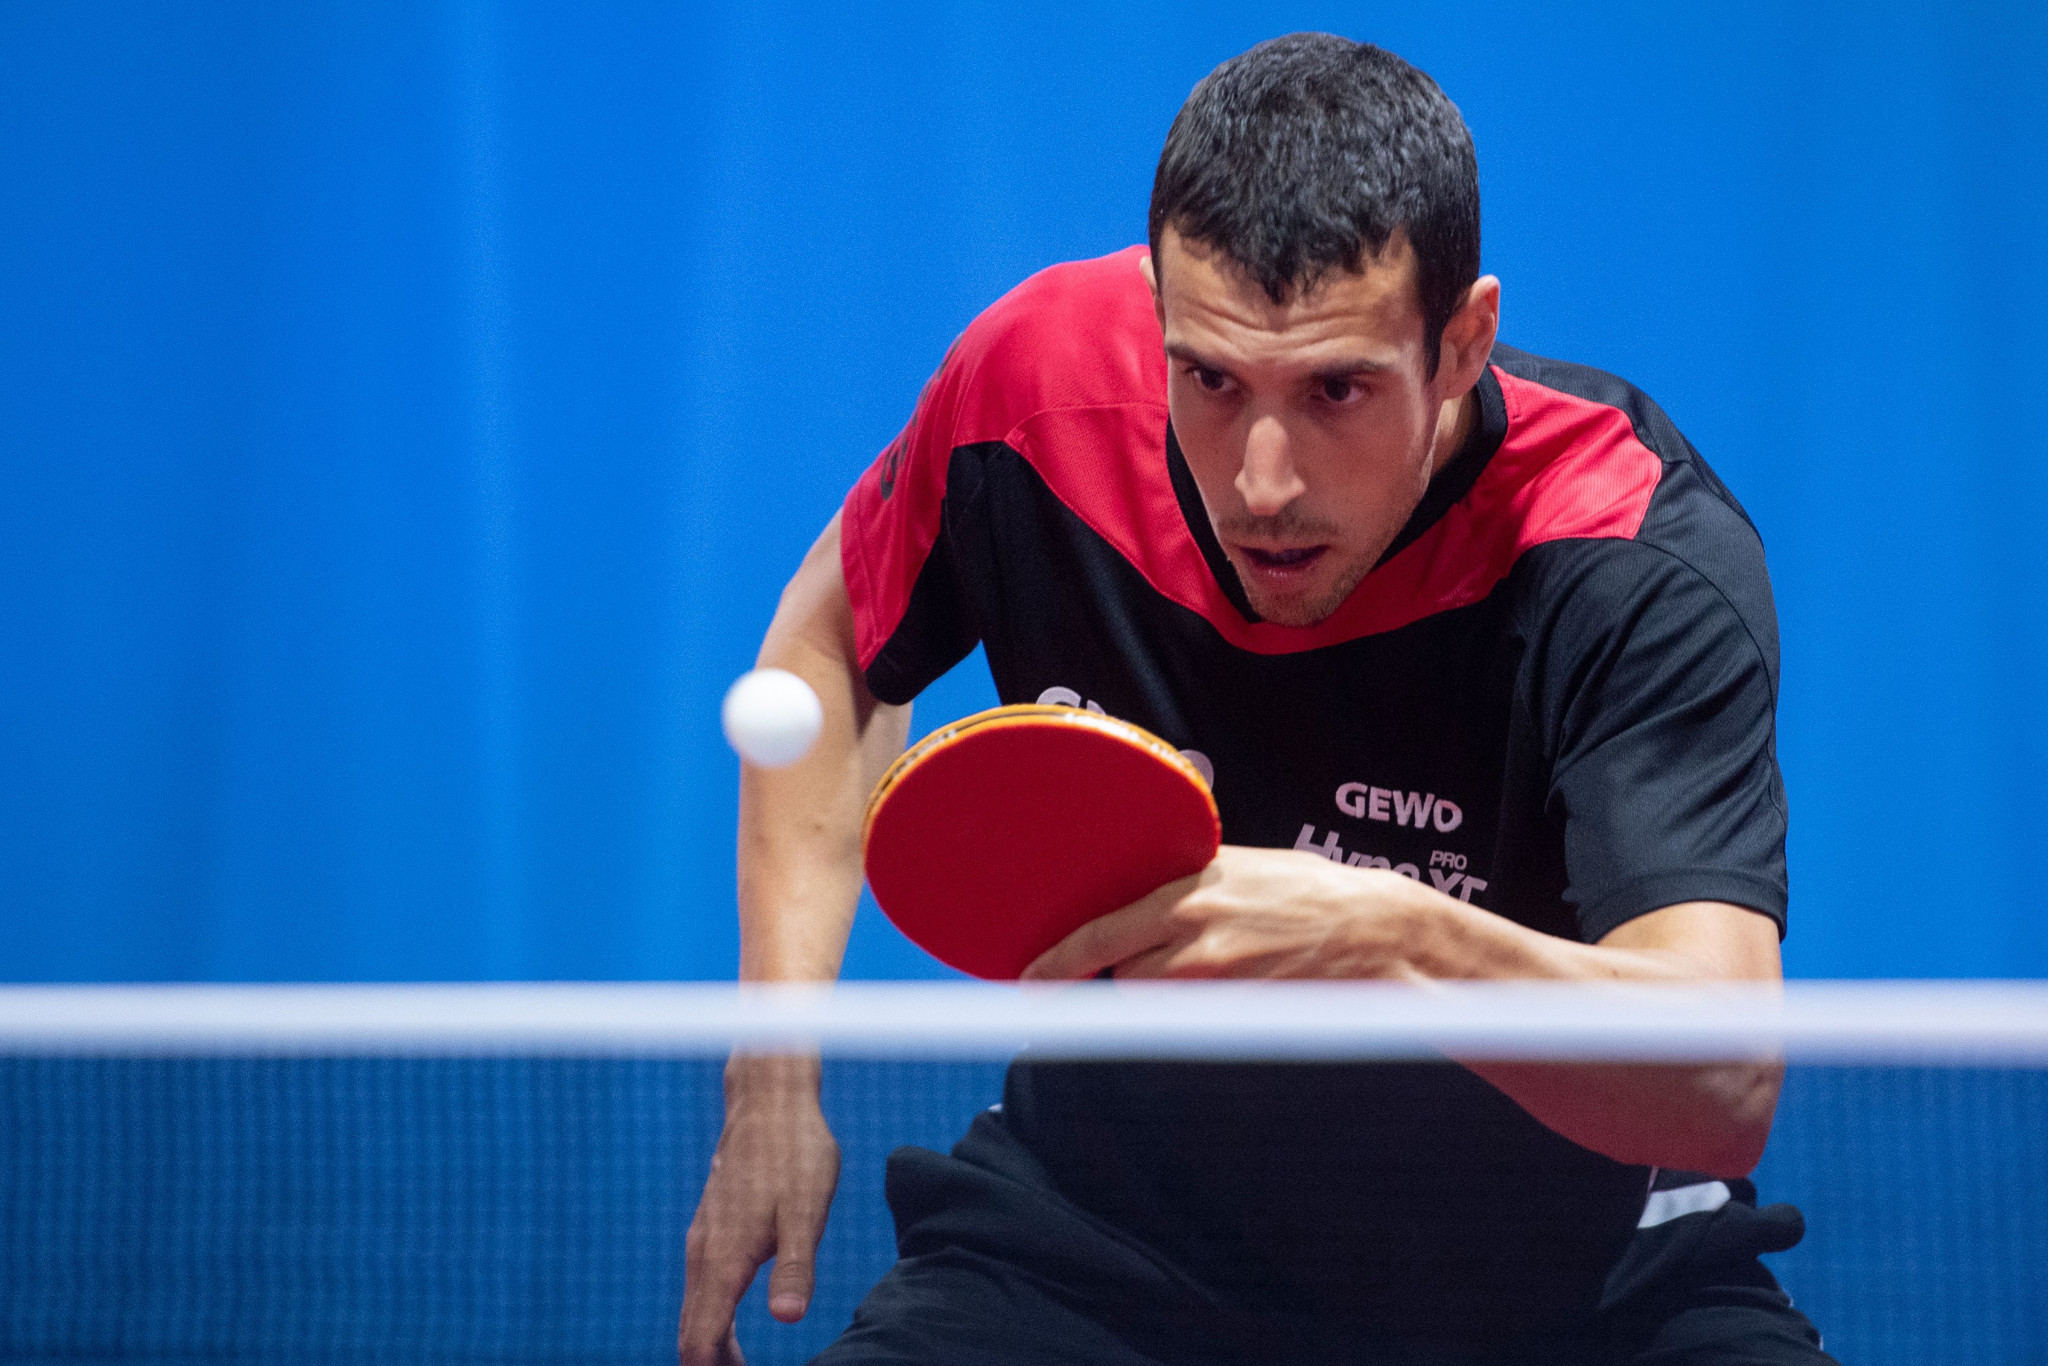 Alvaro Robles of Spain qualified for Tokyo 2020 after winning his last four match at the ITTF European Olympic Singles Qualification Tournament ©Getty Images